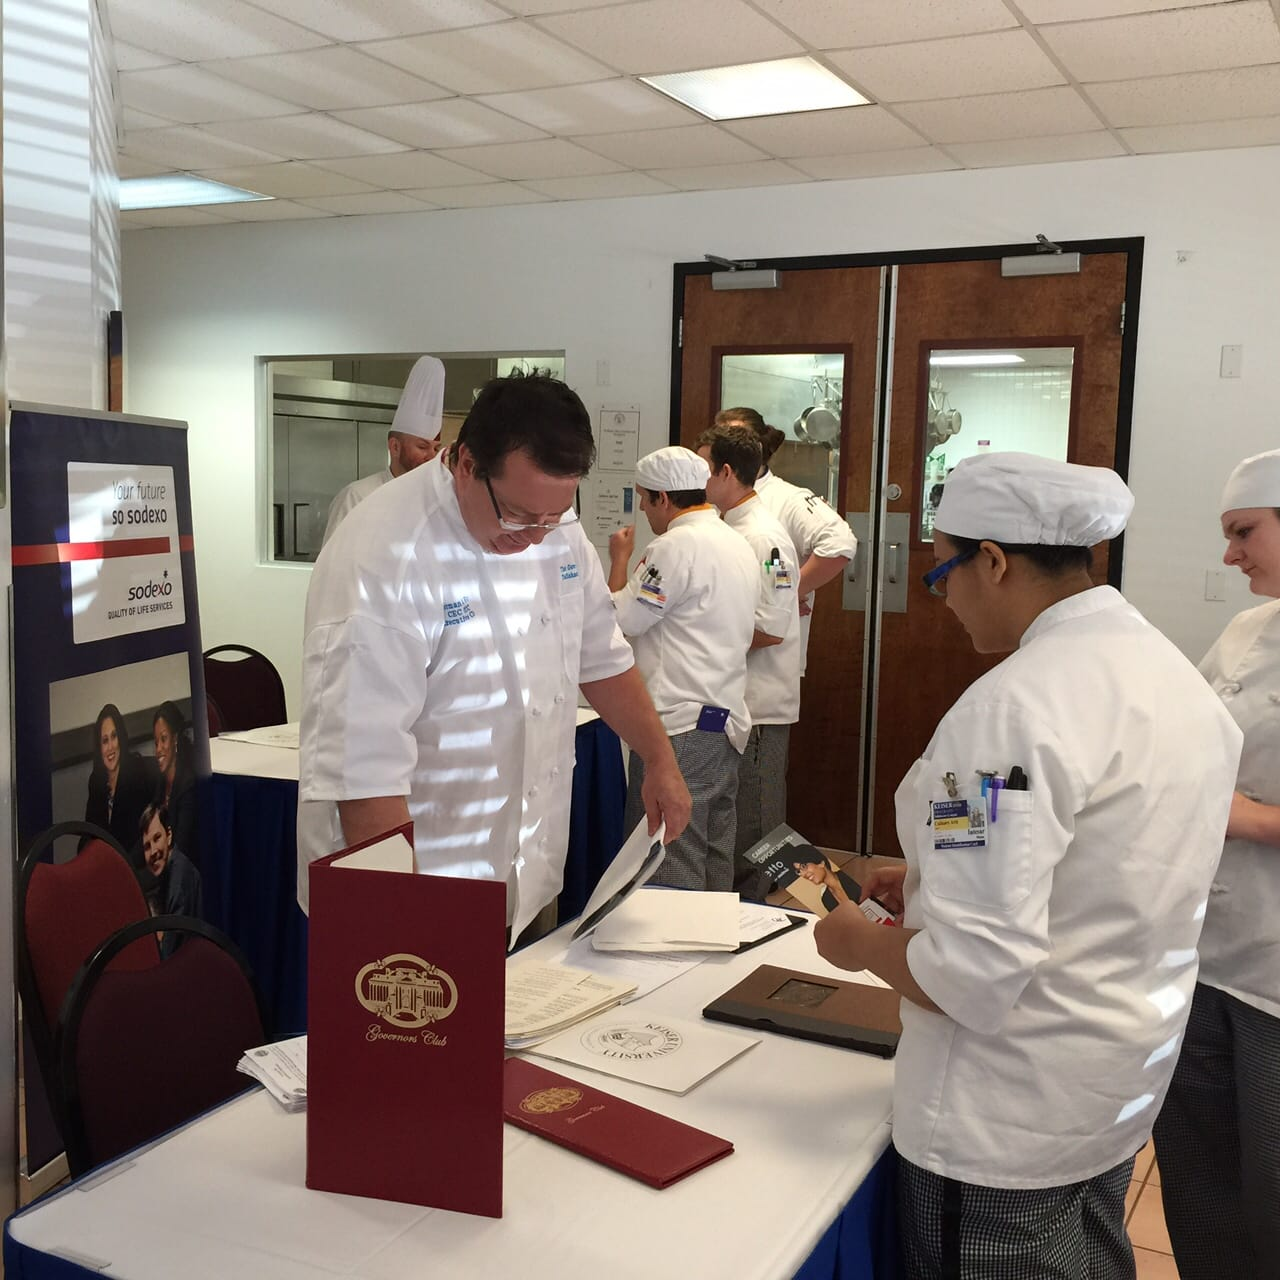 The Tallahassee Campus Holds a Culinary Job Fair